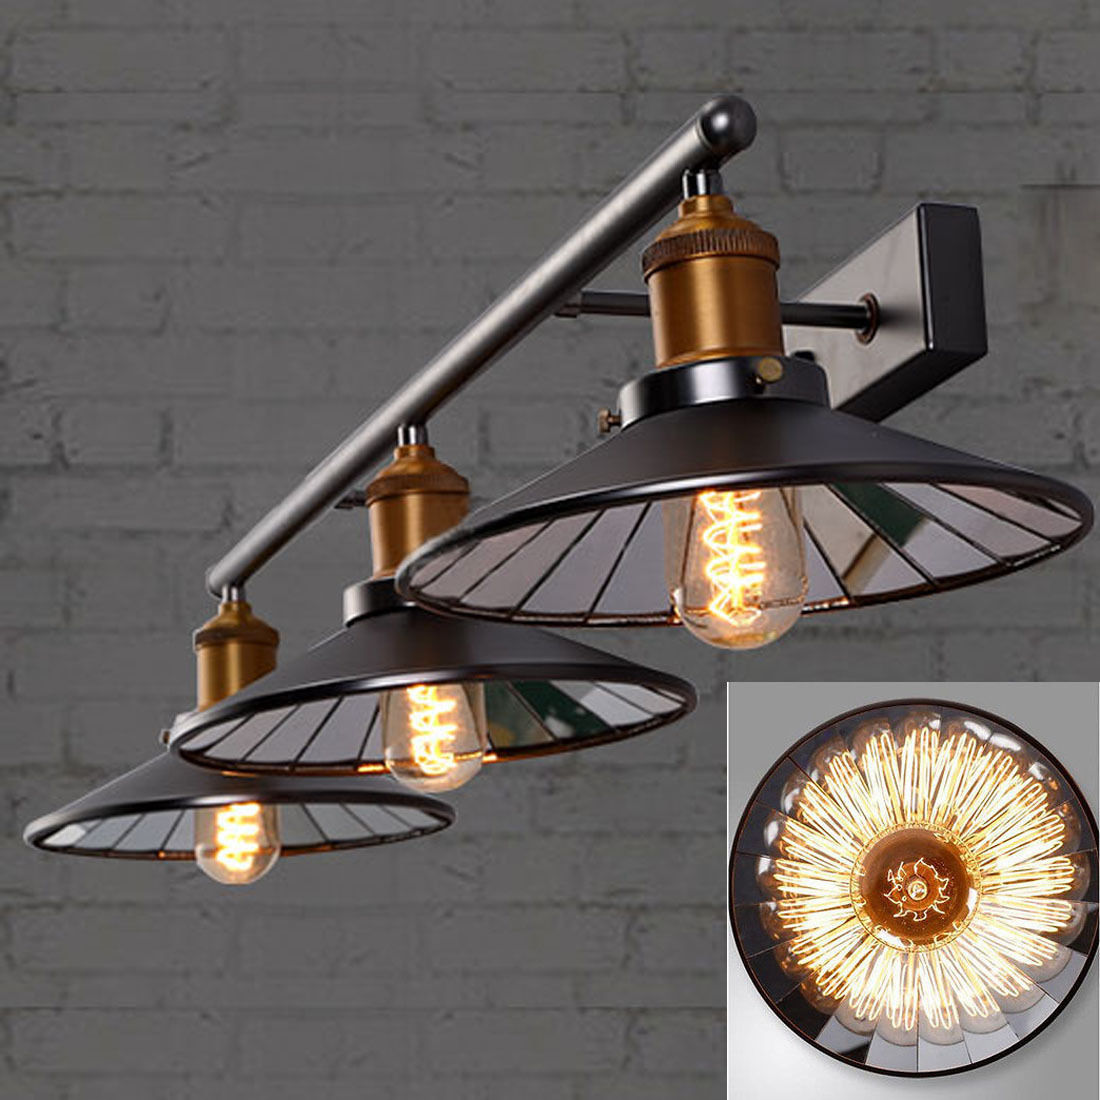 3-Lights Industrial Mirror Shade Wall Lights Loft Metal Wall Sconce Lamp Fixture